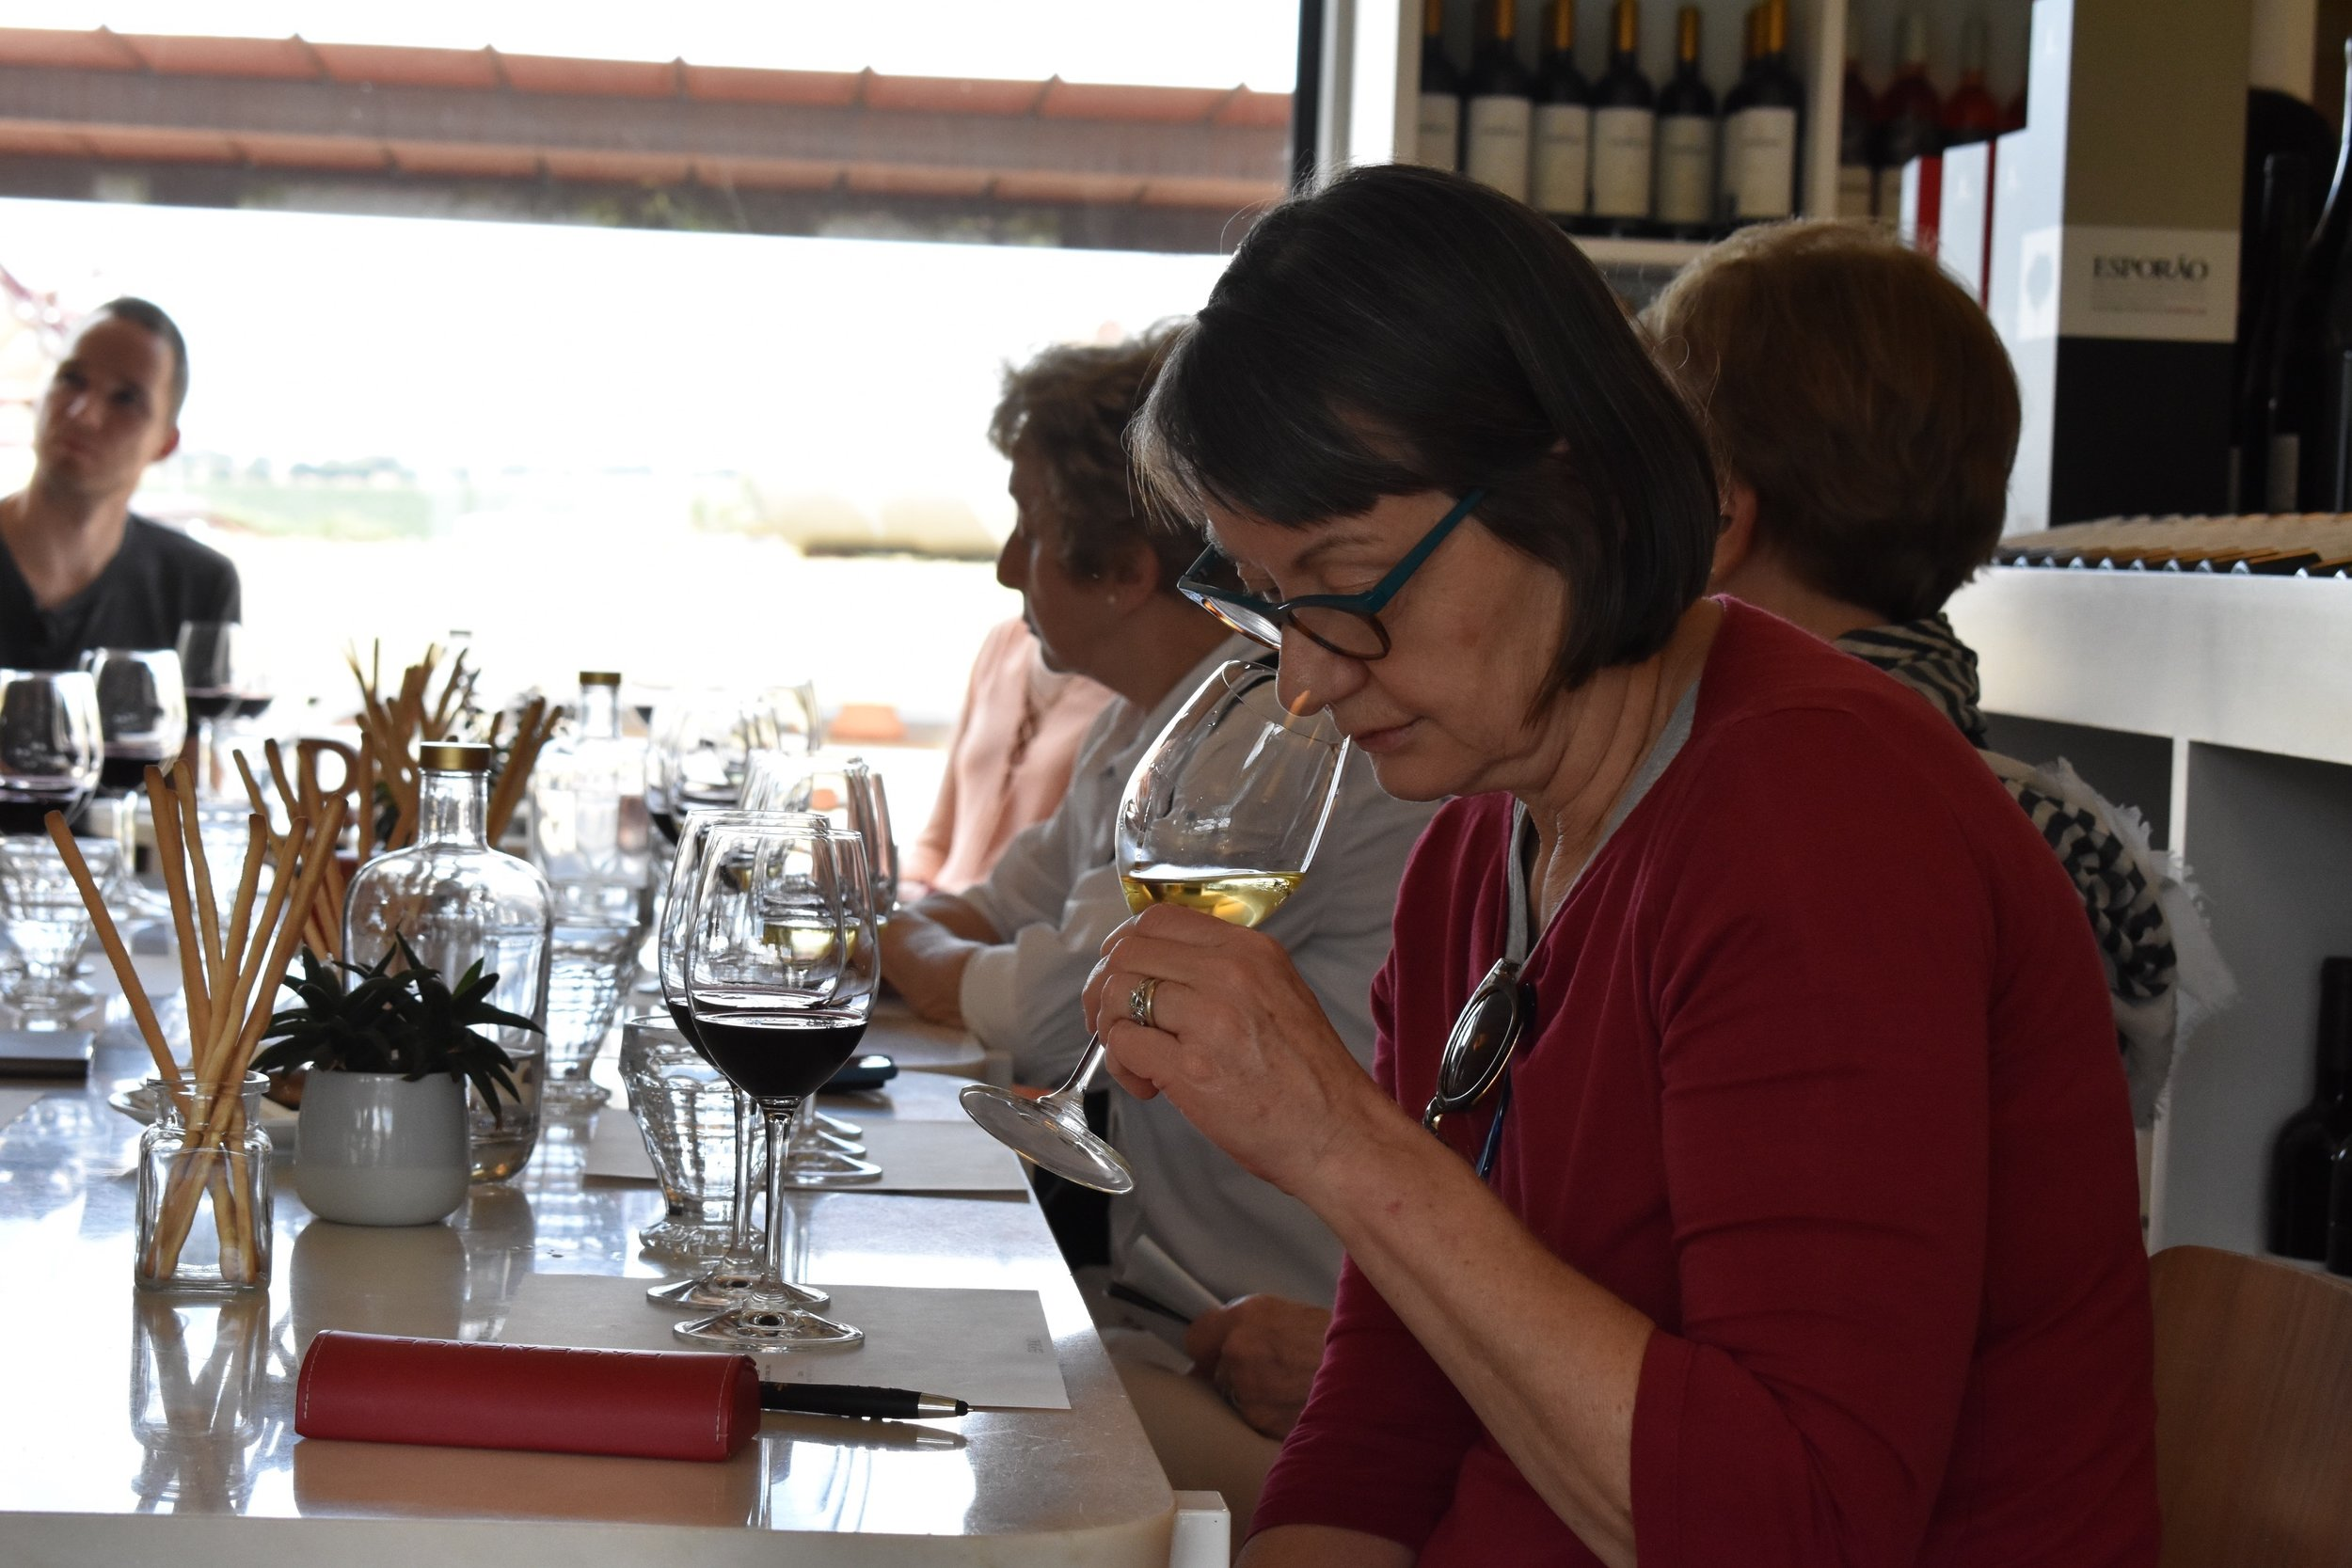 And naturally, time for the serious business of wine tasting